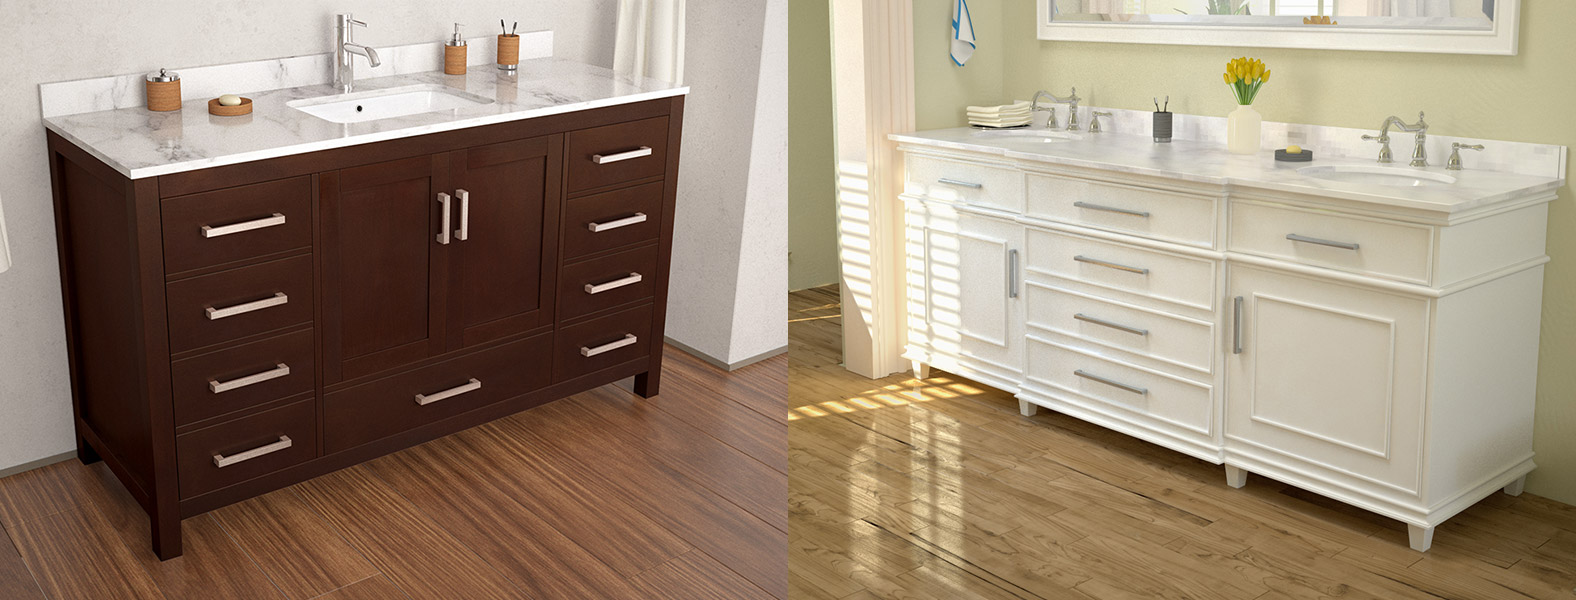 Vanity styles for any bathroom